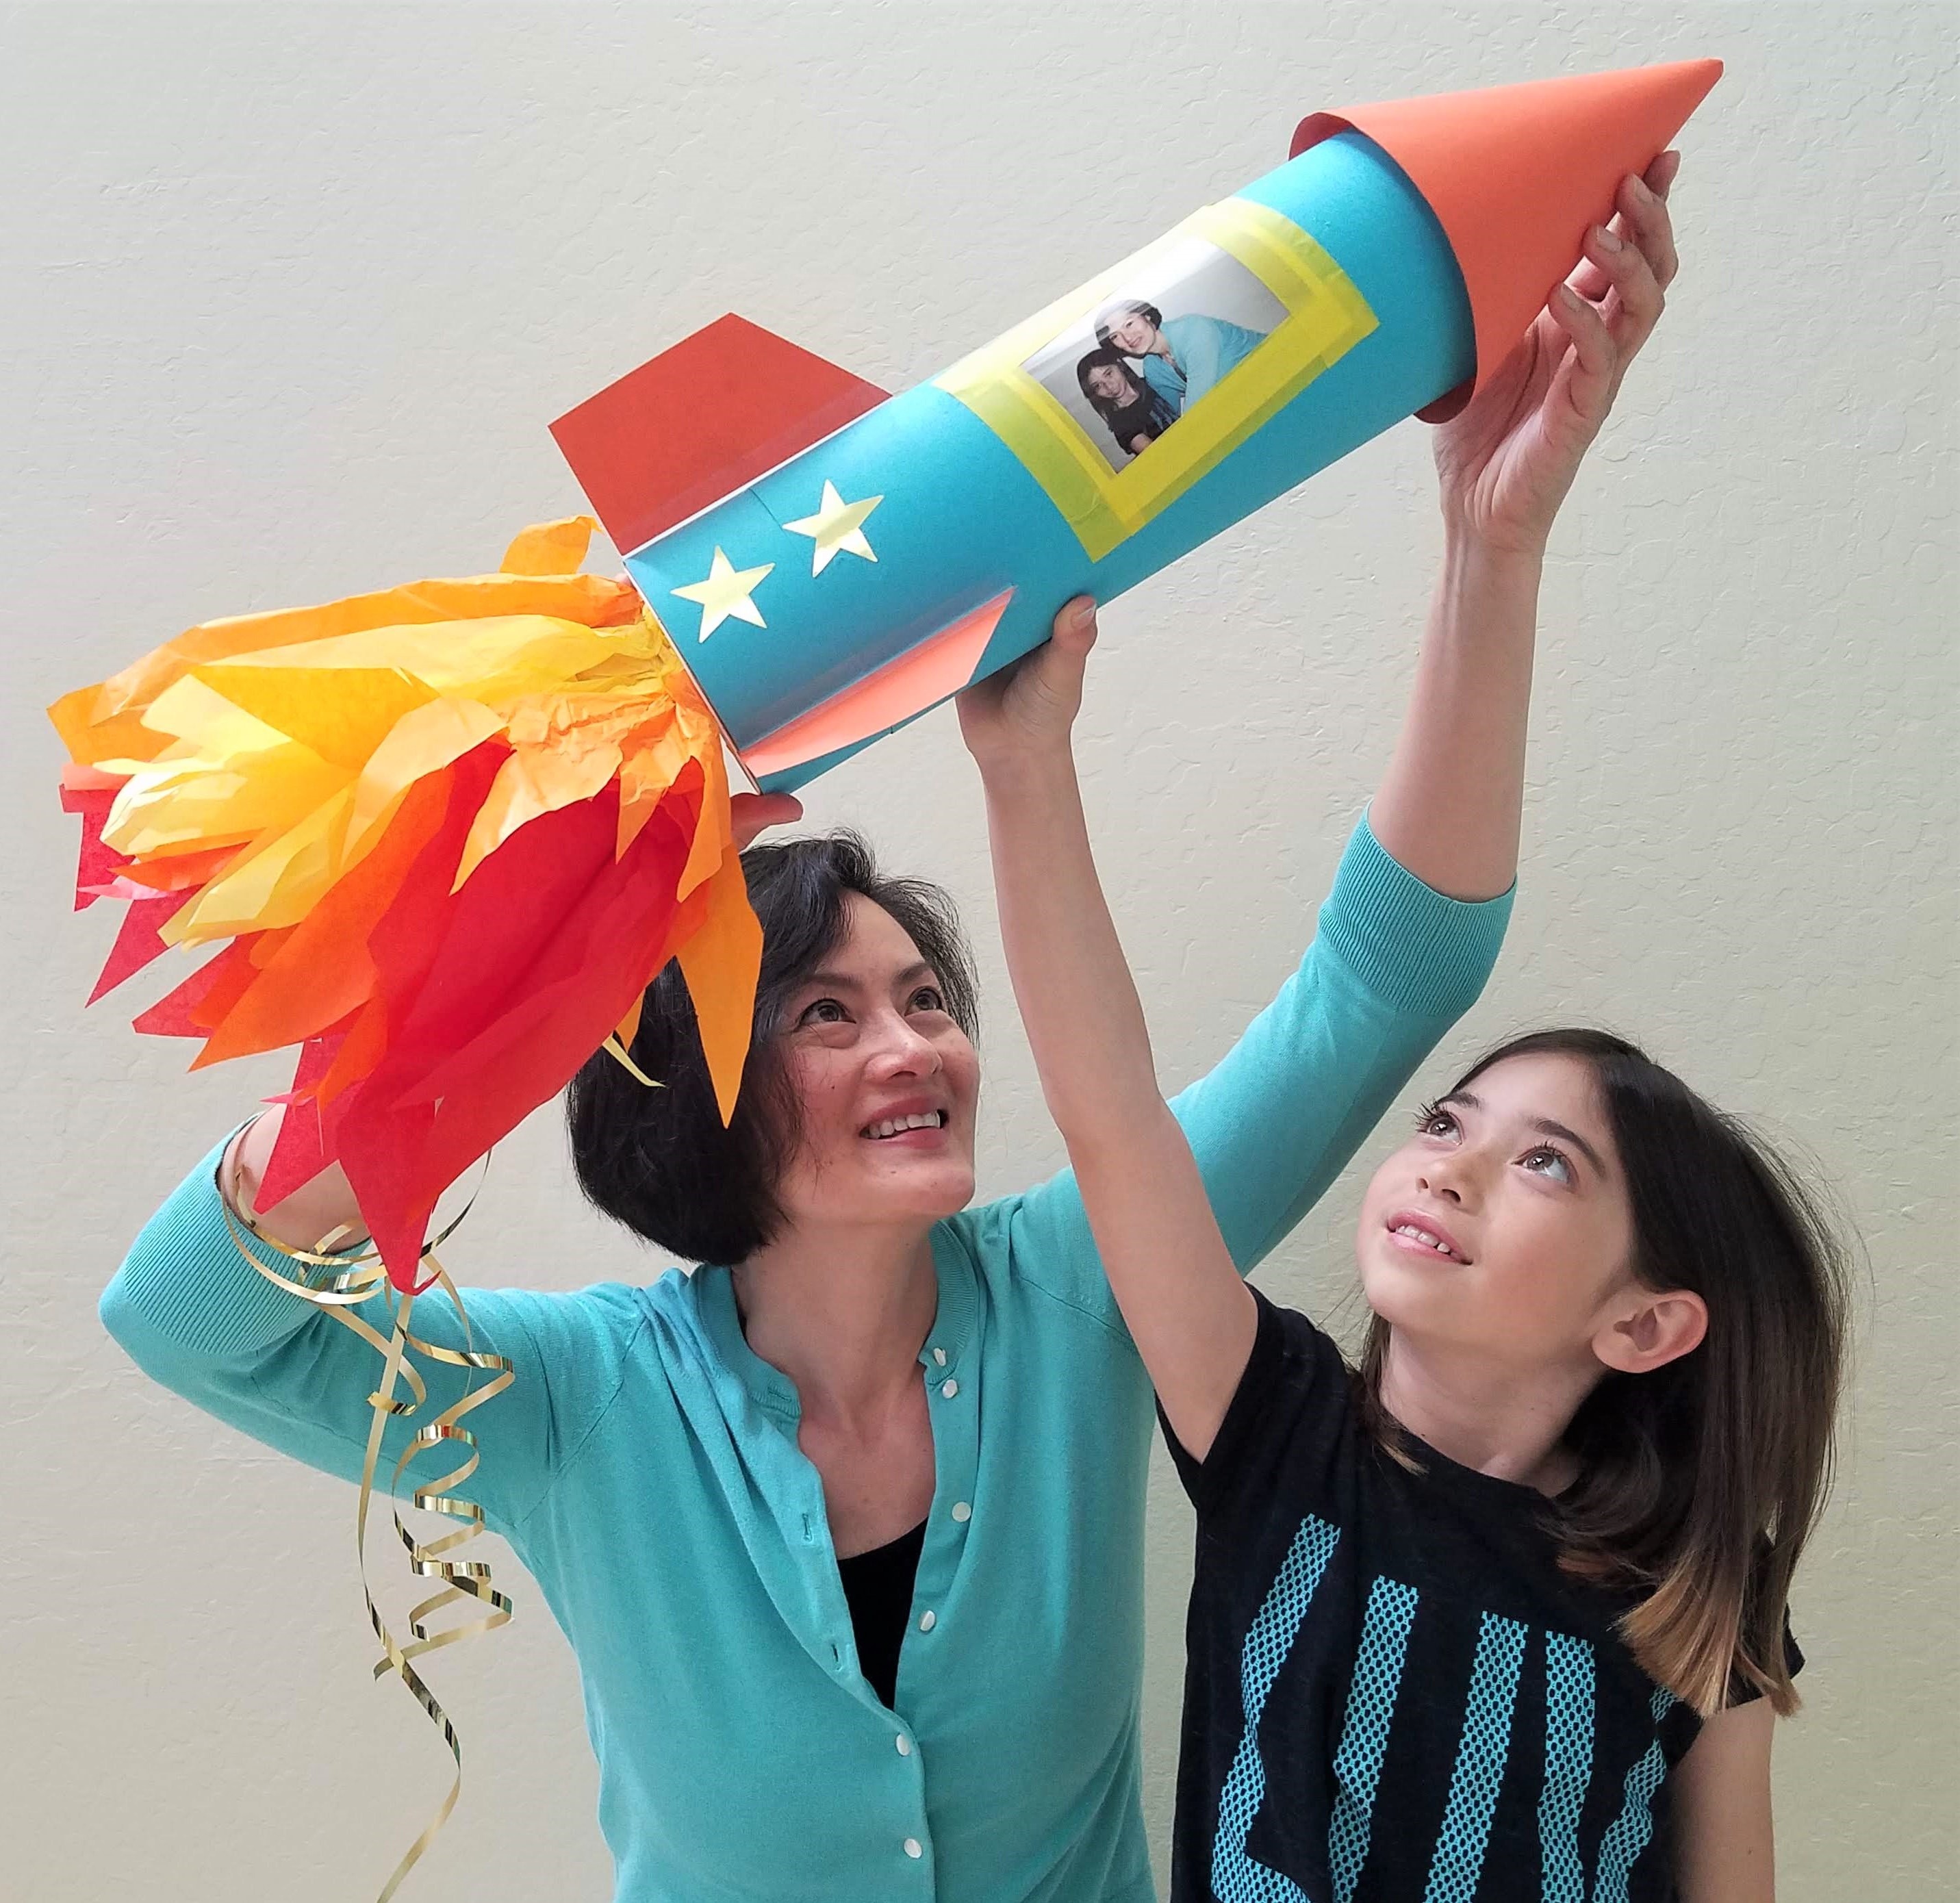 Family Art Workshop: Make a Family Spaceship!